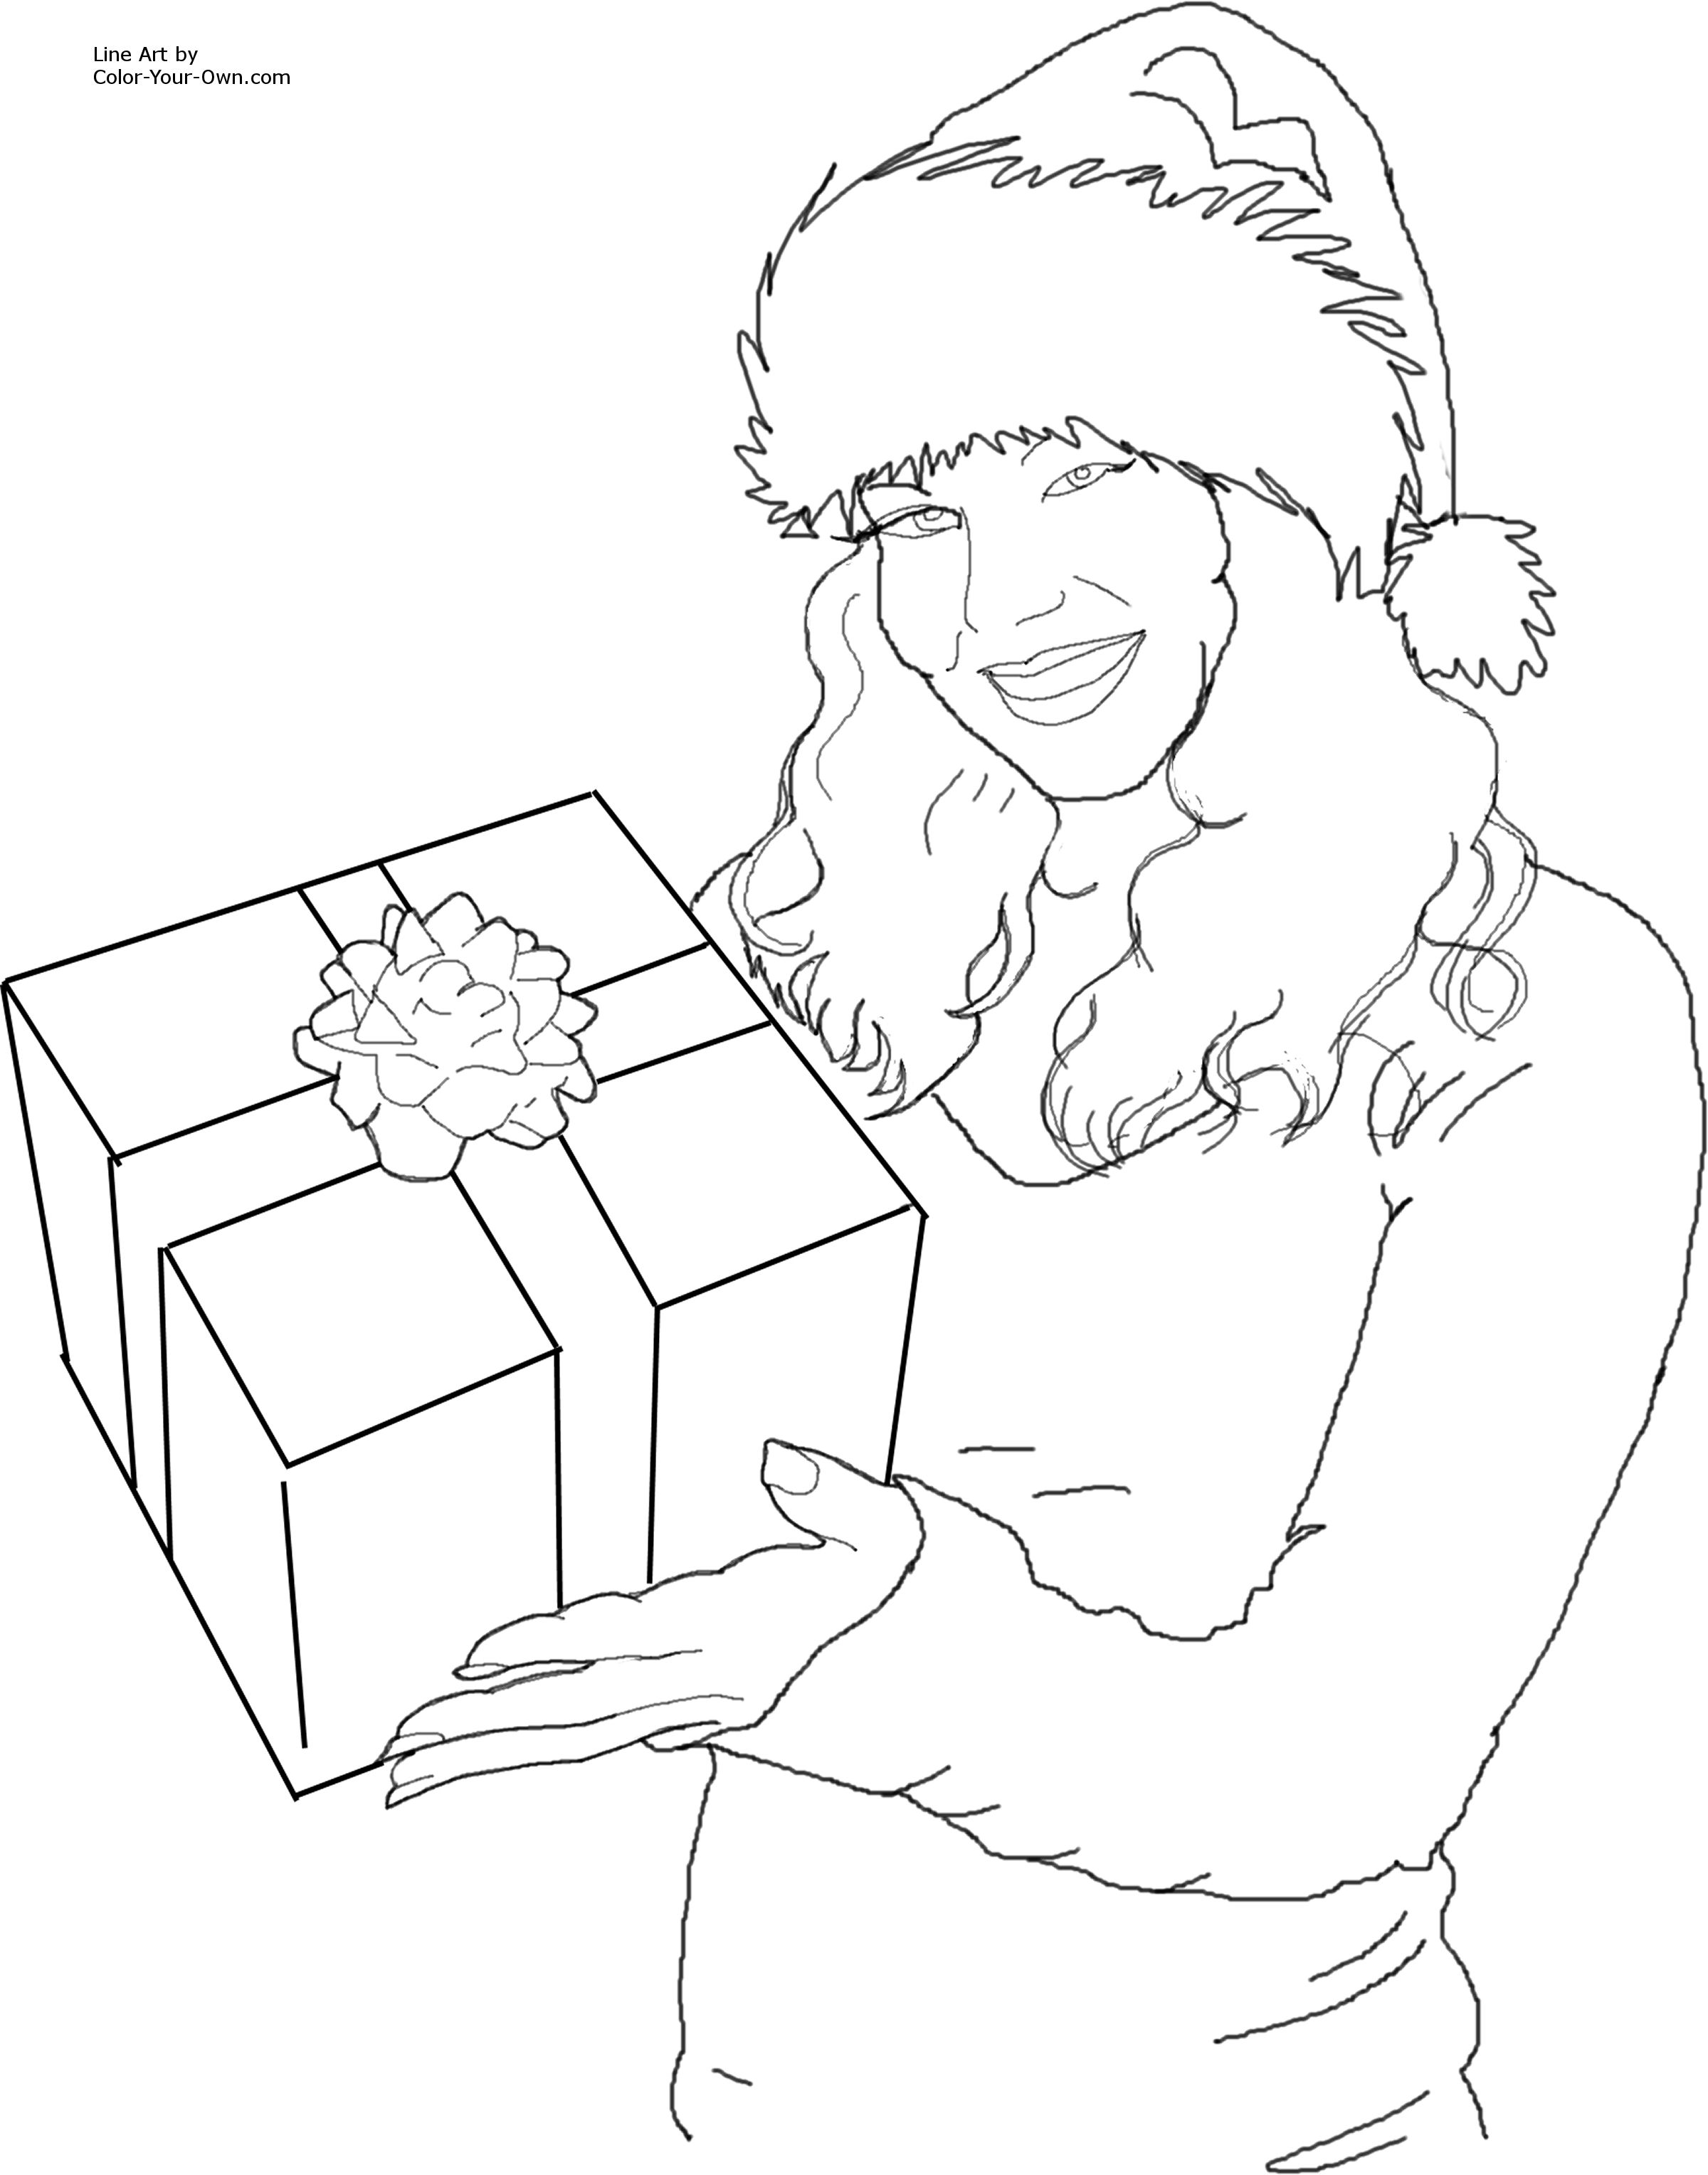 433x527 chevy silverado parts diagram systematic drawing accordingly famreit 2400x3056 christmas santa 39s helper with a gift coloring page